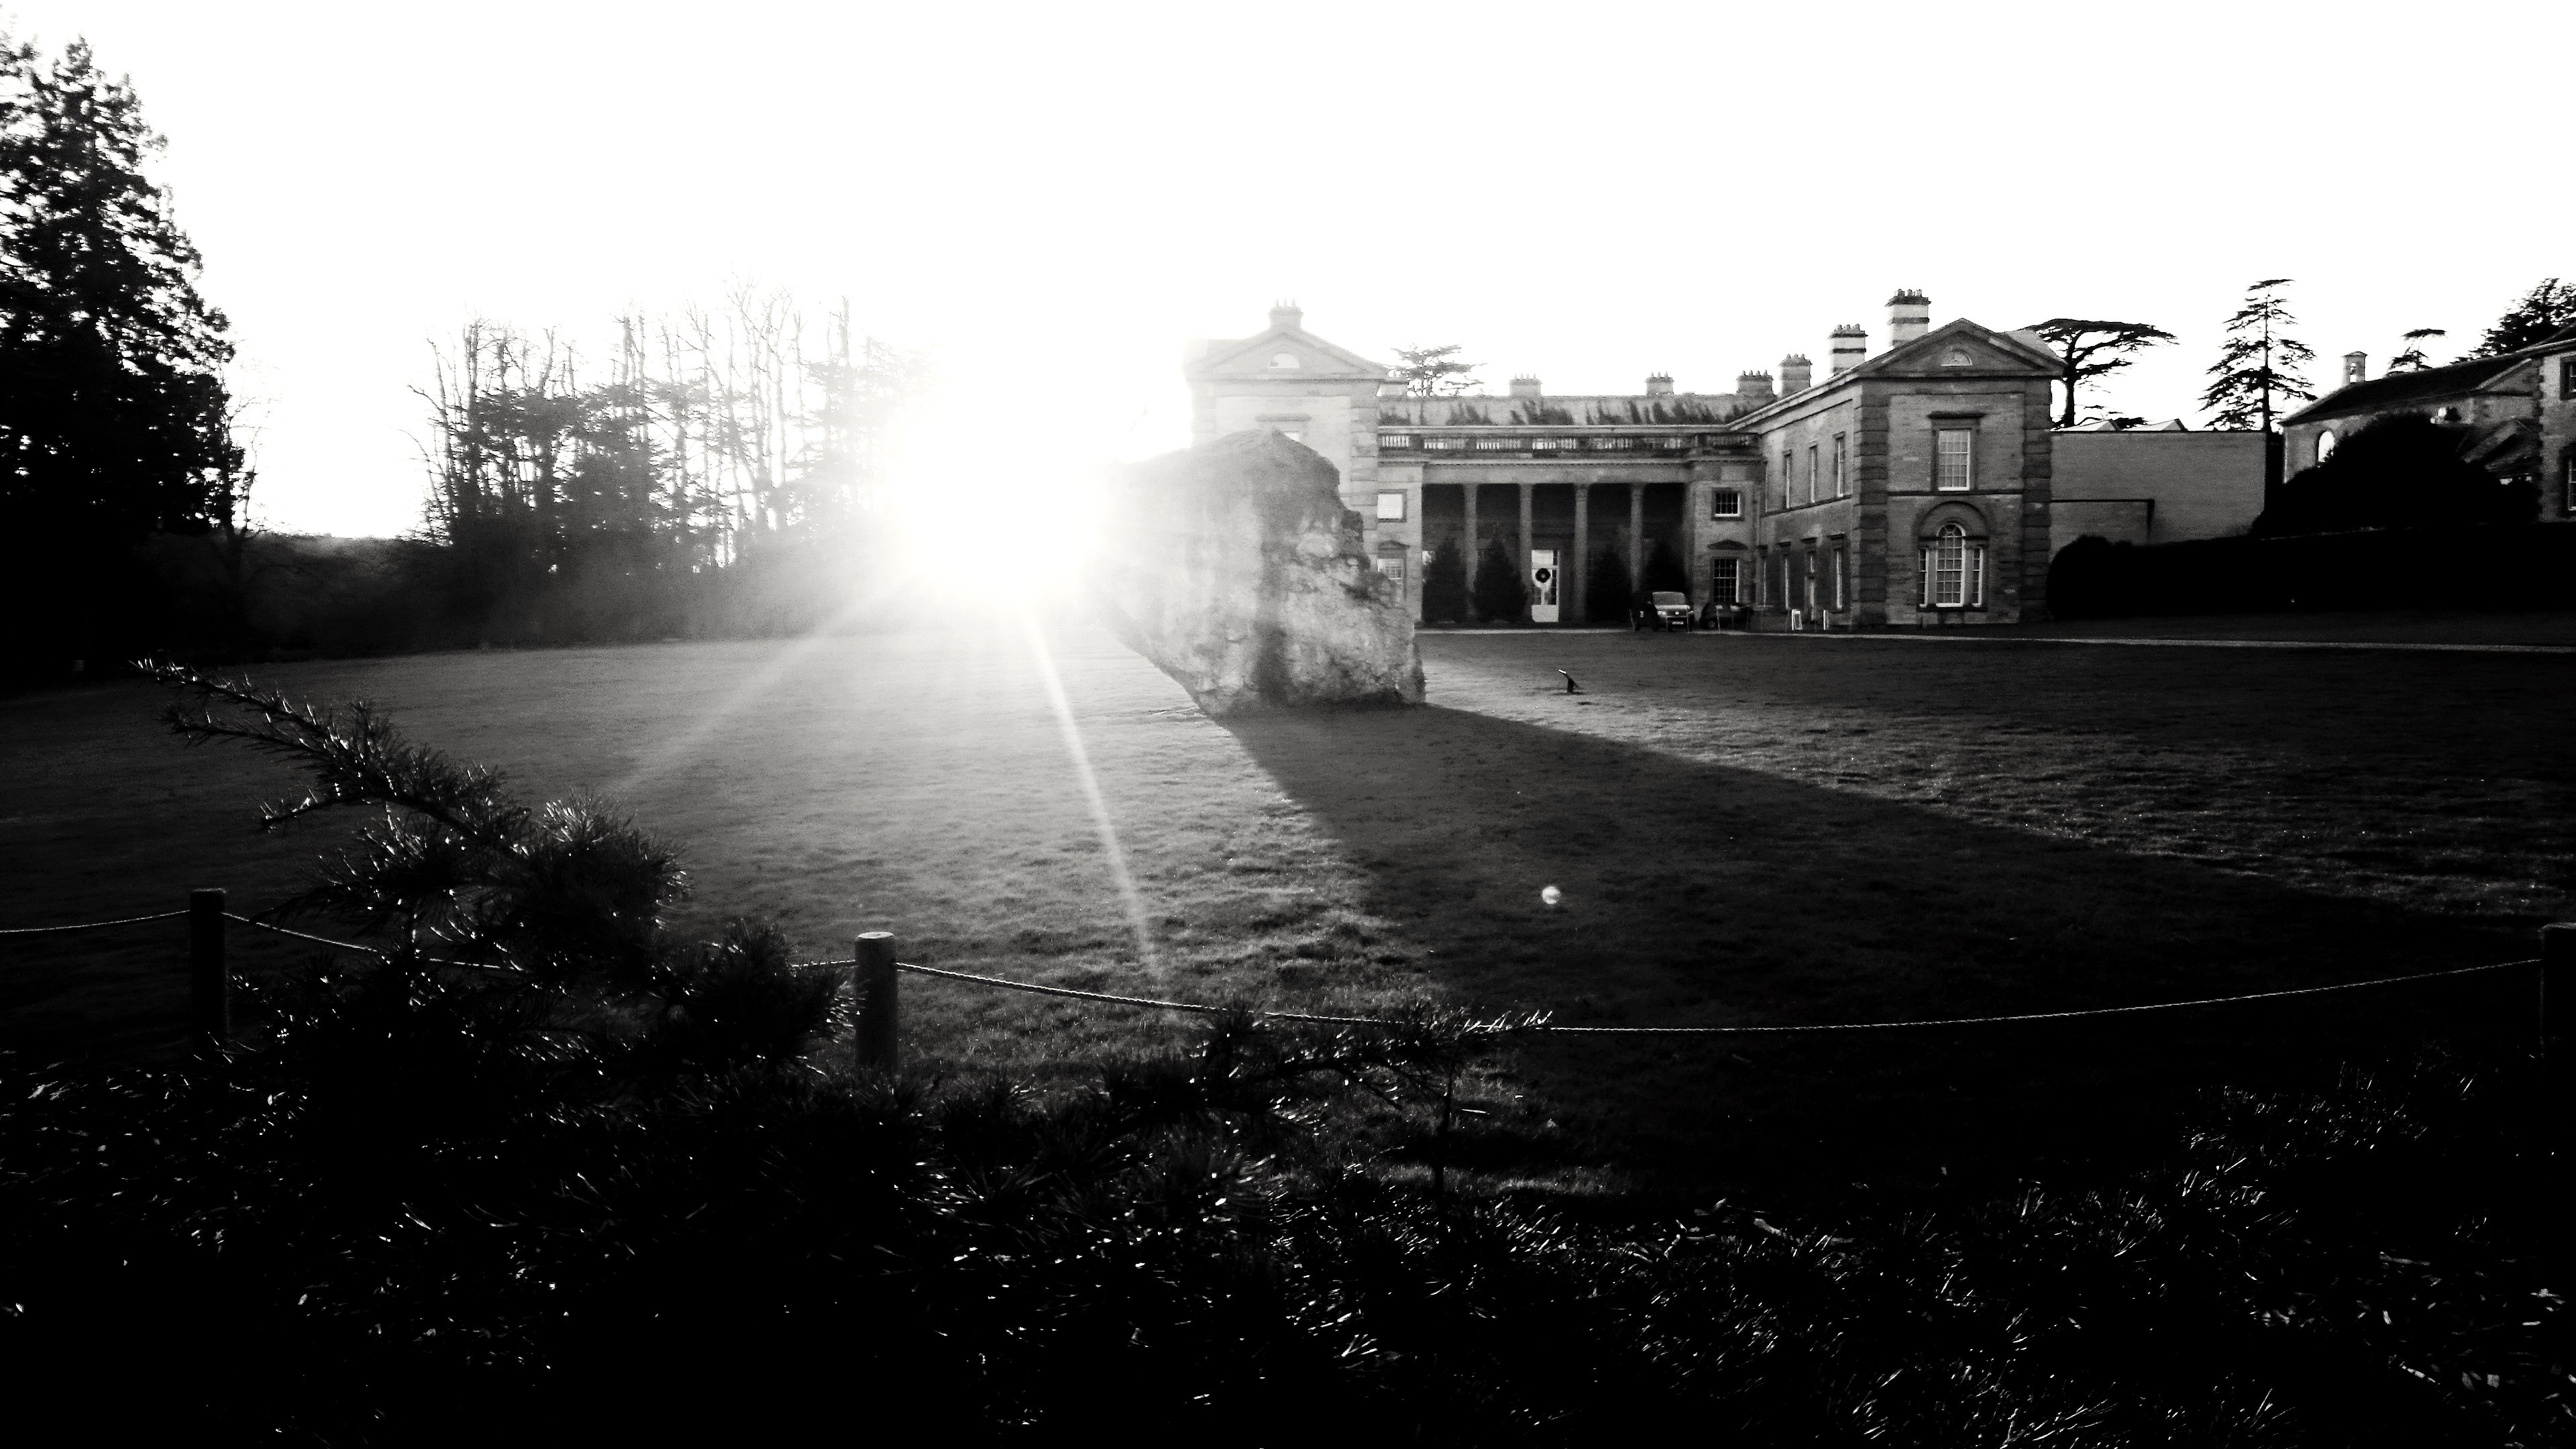 Sunset at Compton Verney